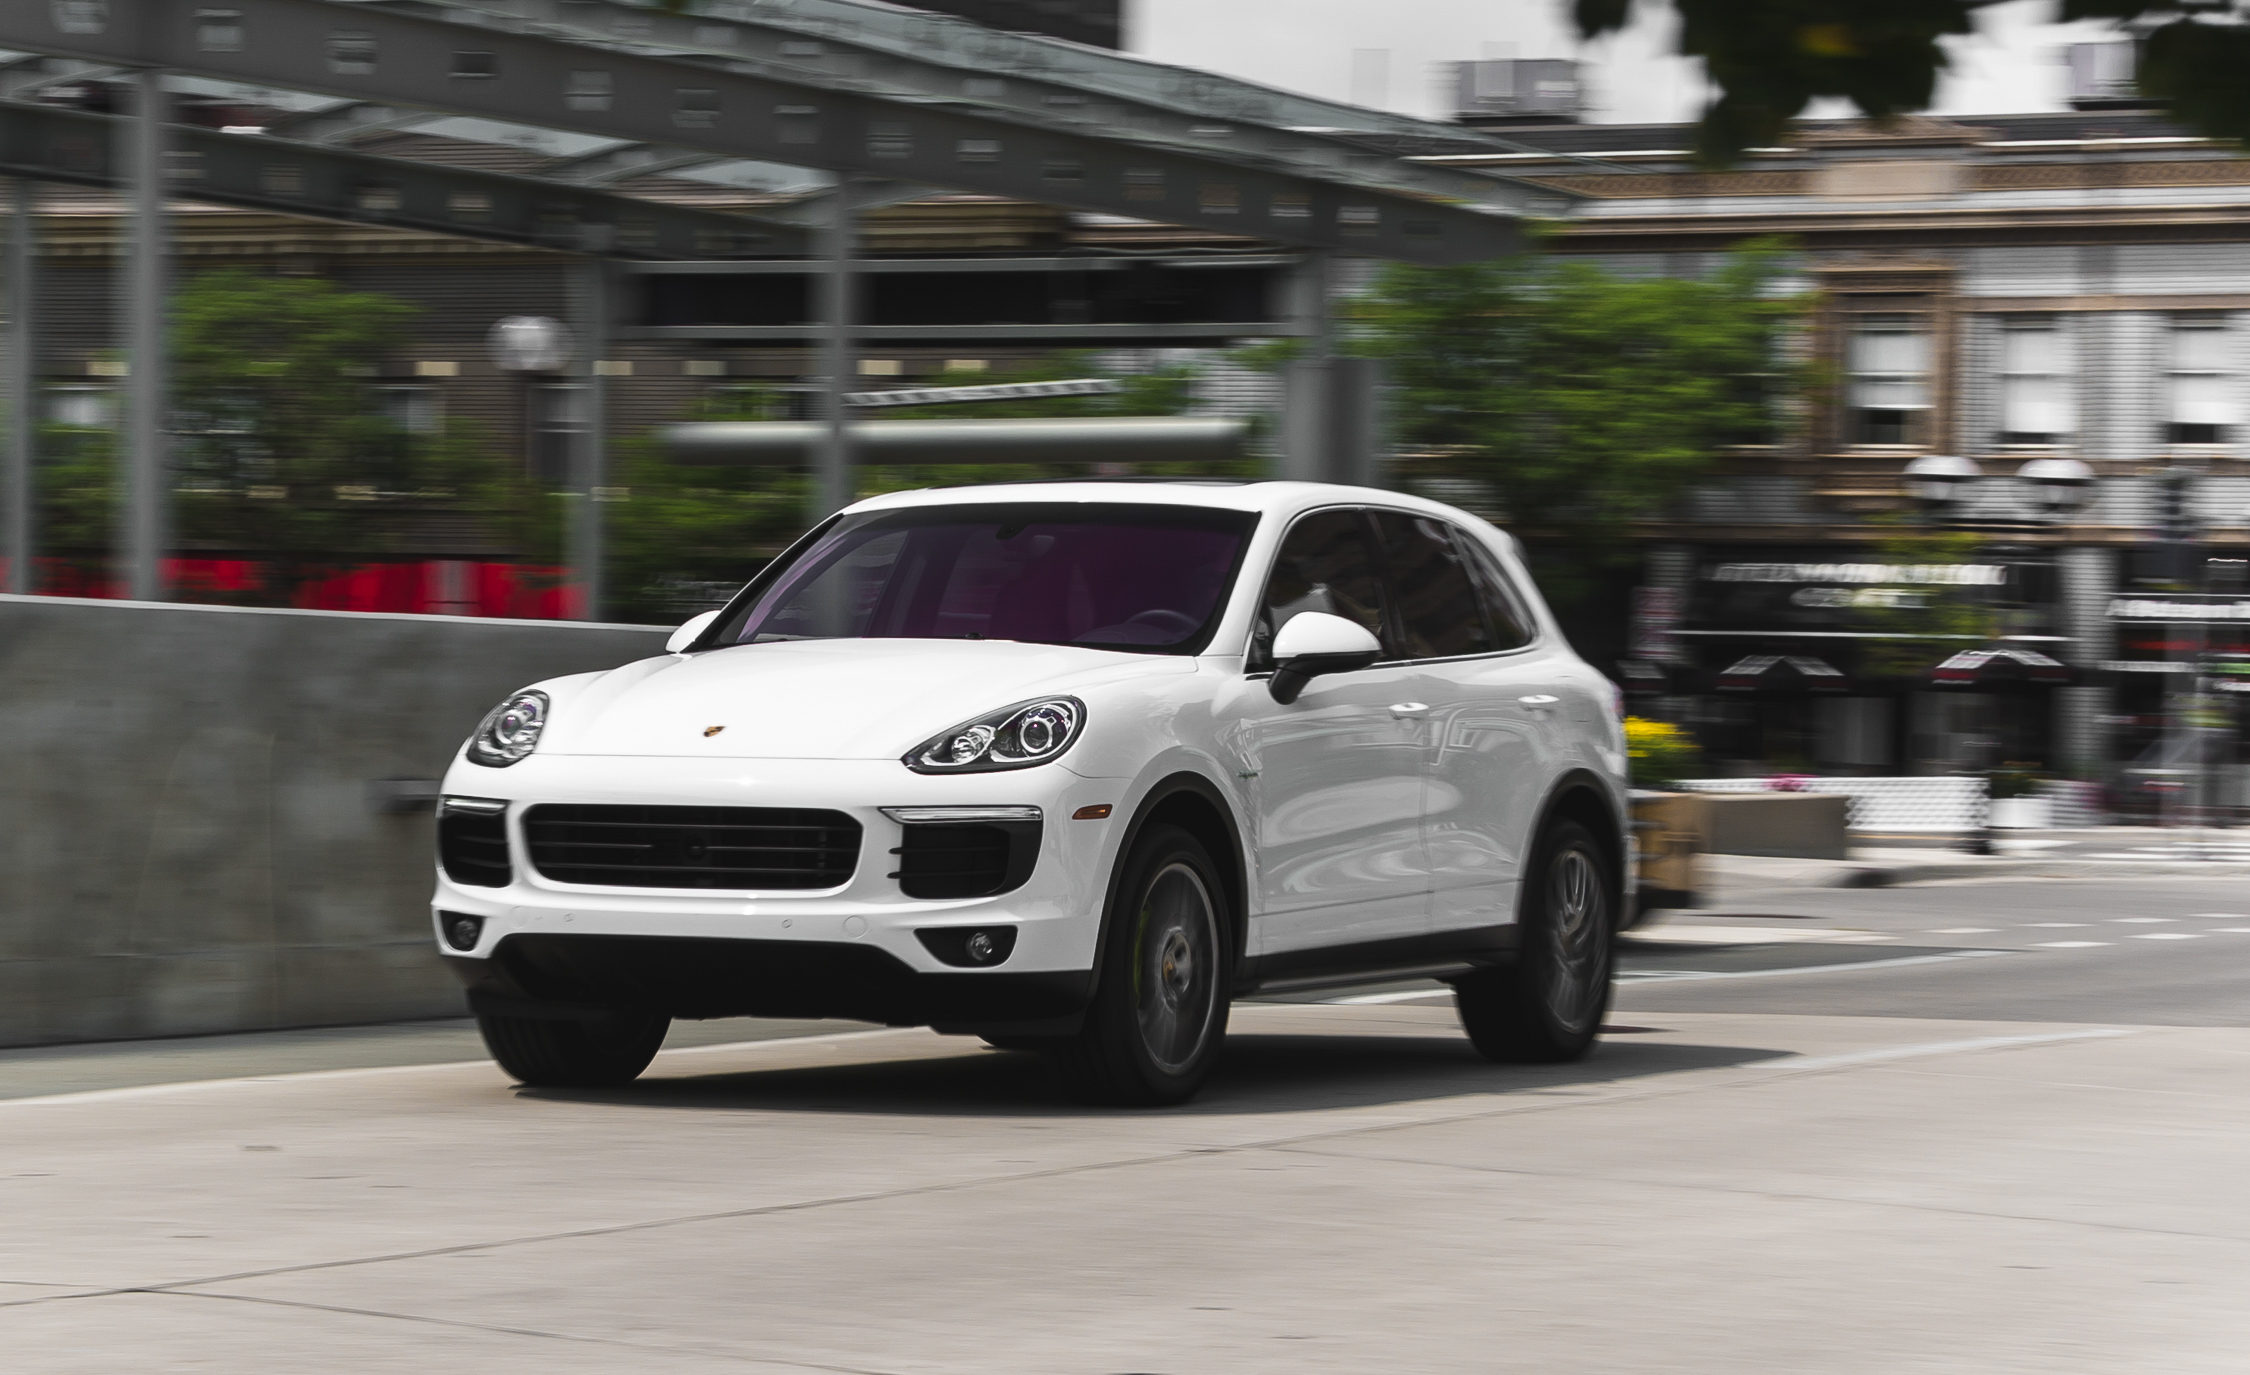 2015 porsche cayenne s e hybrid changes 7502 cars performance reviews and test drive. Black Bedroom Furniture Sets. Home Design Ideas